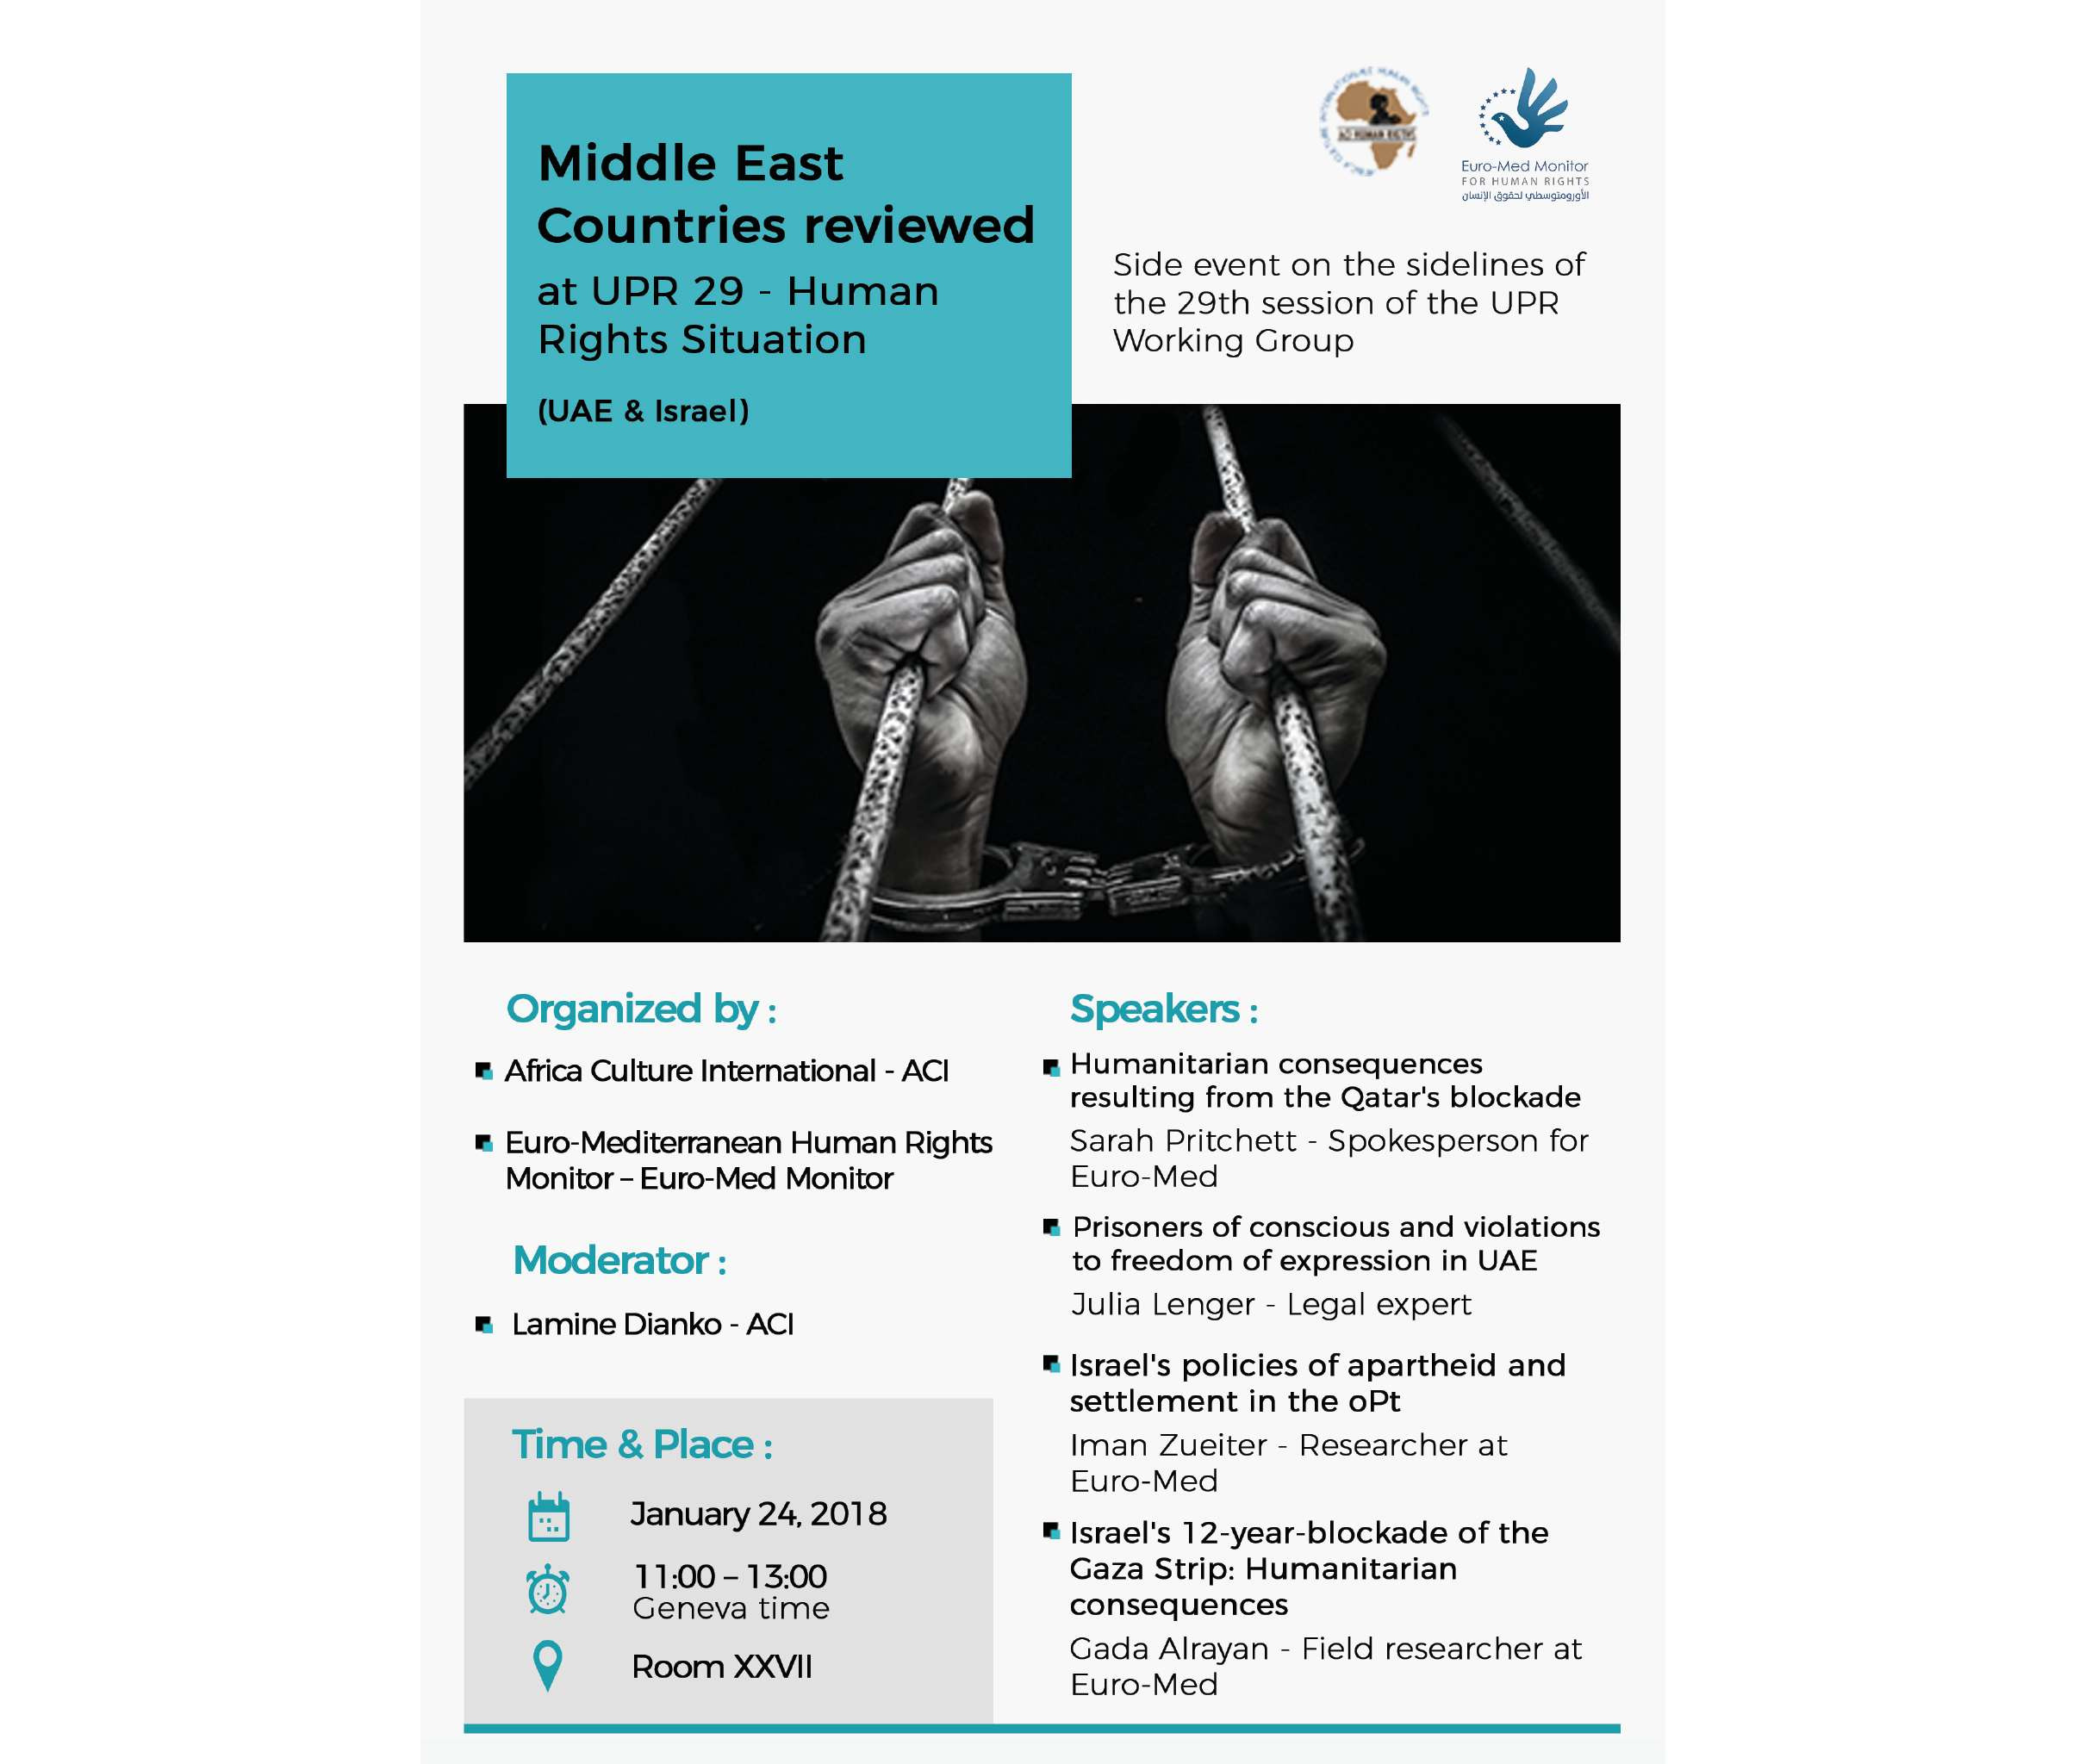 On the sidelines of the UPR, Euro-Med Monitor and ACI hold side event on human rights situation in oPt and UAE